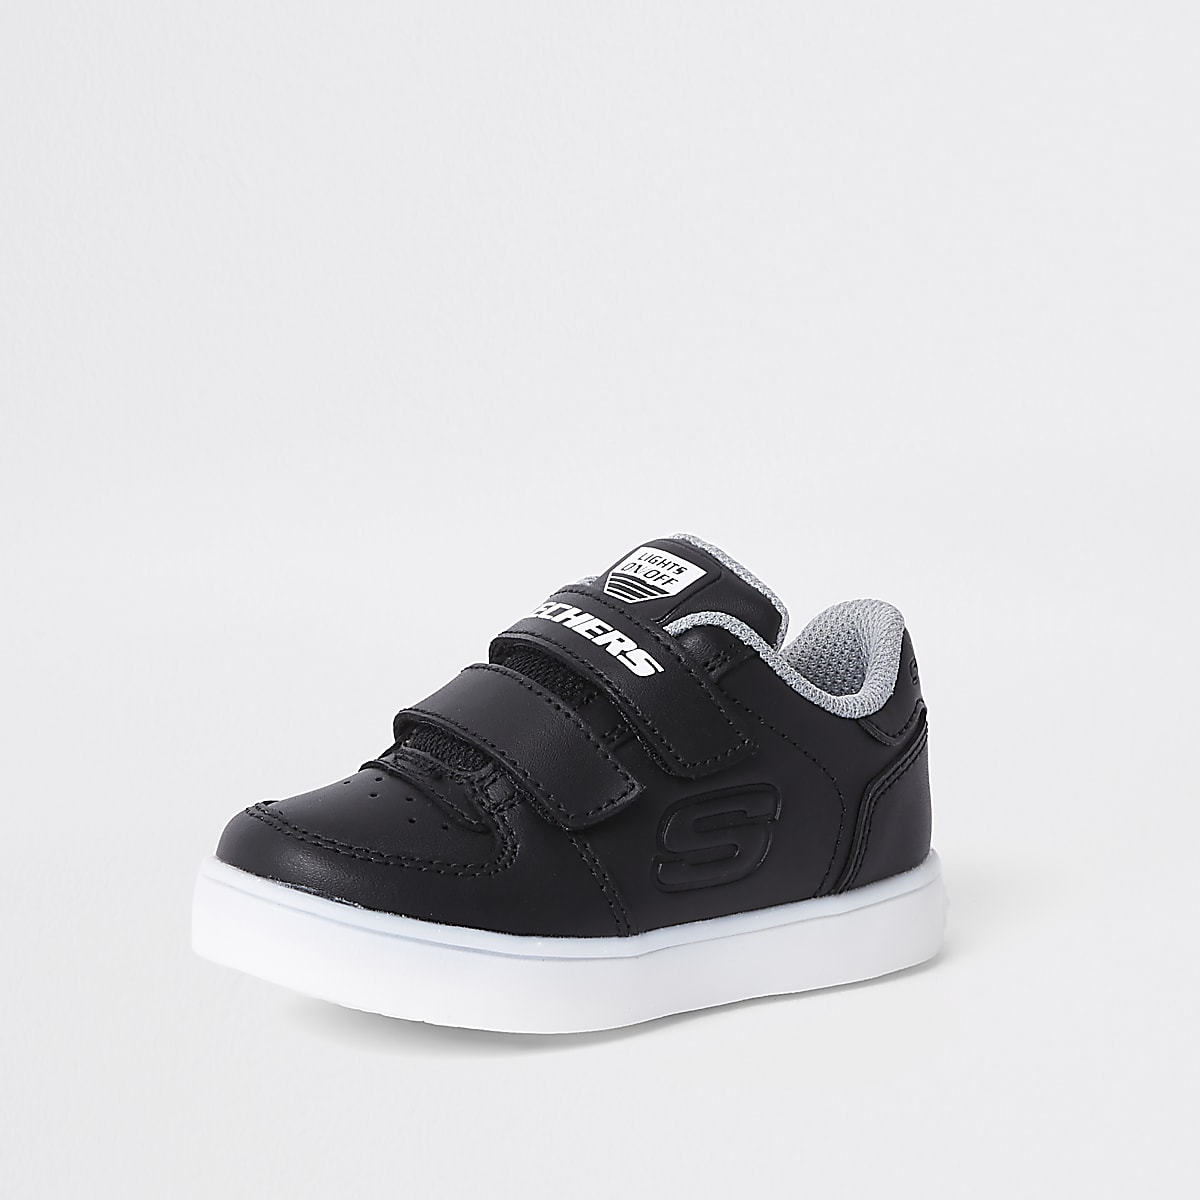 53440d355 Mini boys Skechers black light-up trainers - Baby Boys Trainers ...